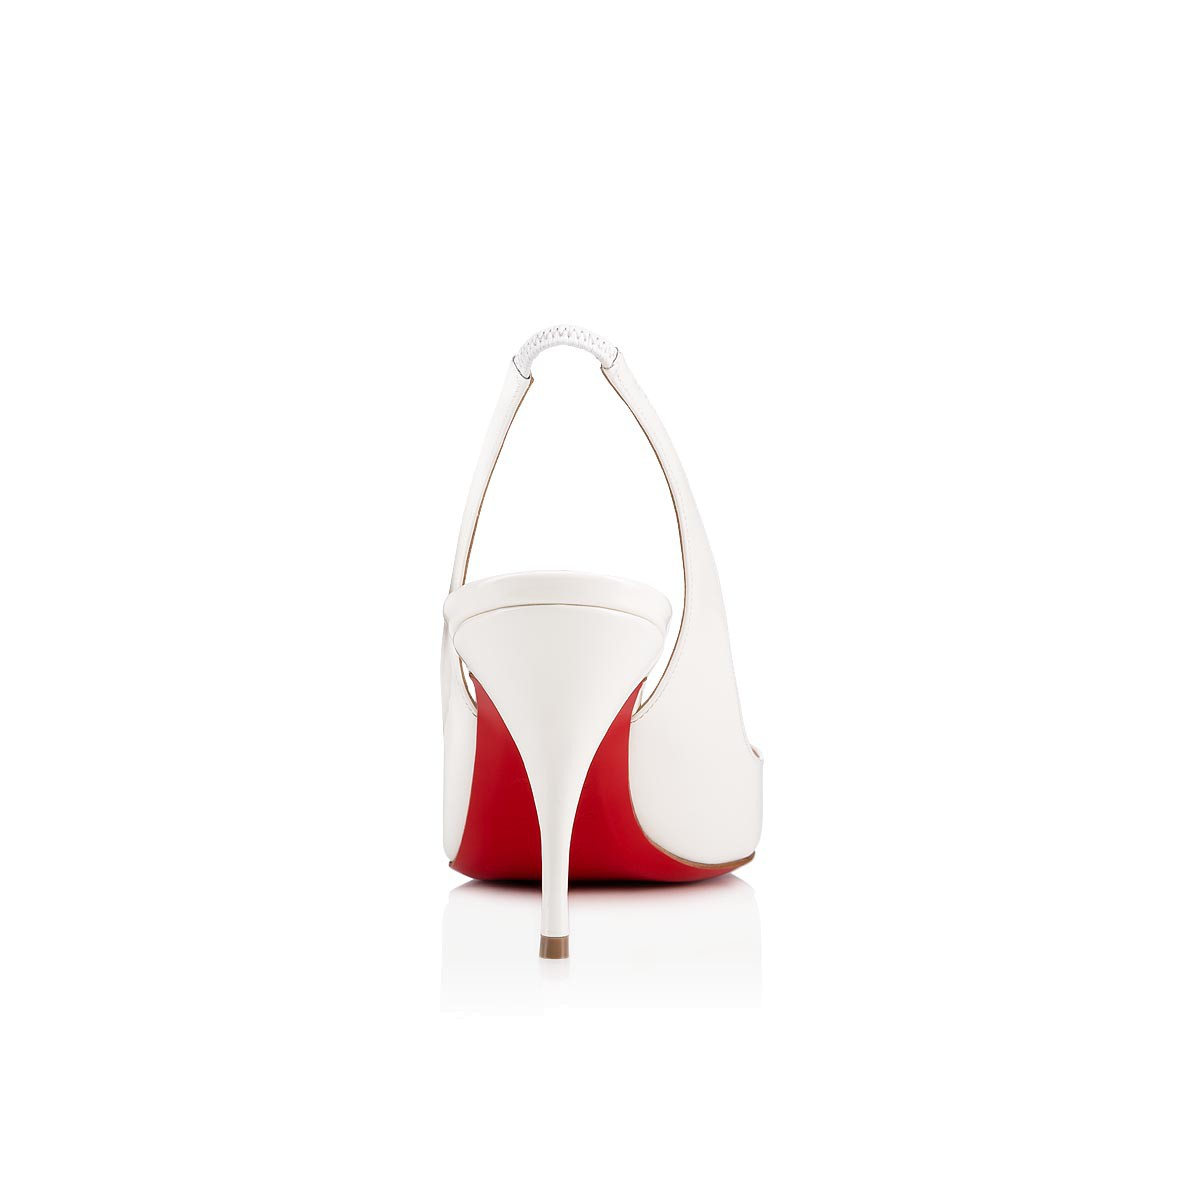 Souliers - Clare Sling 080 Patent - Christian Louboutin